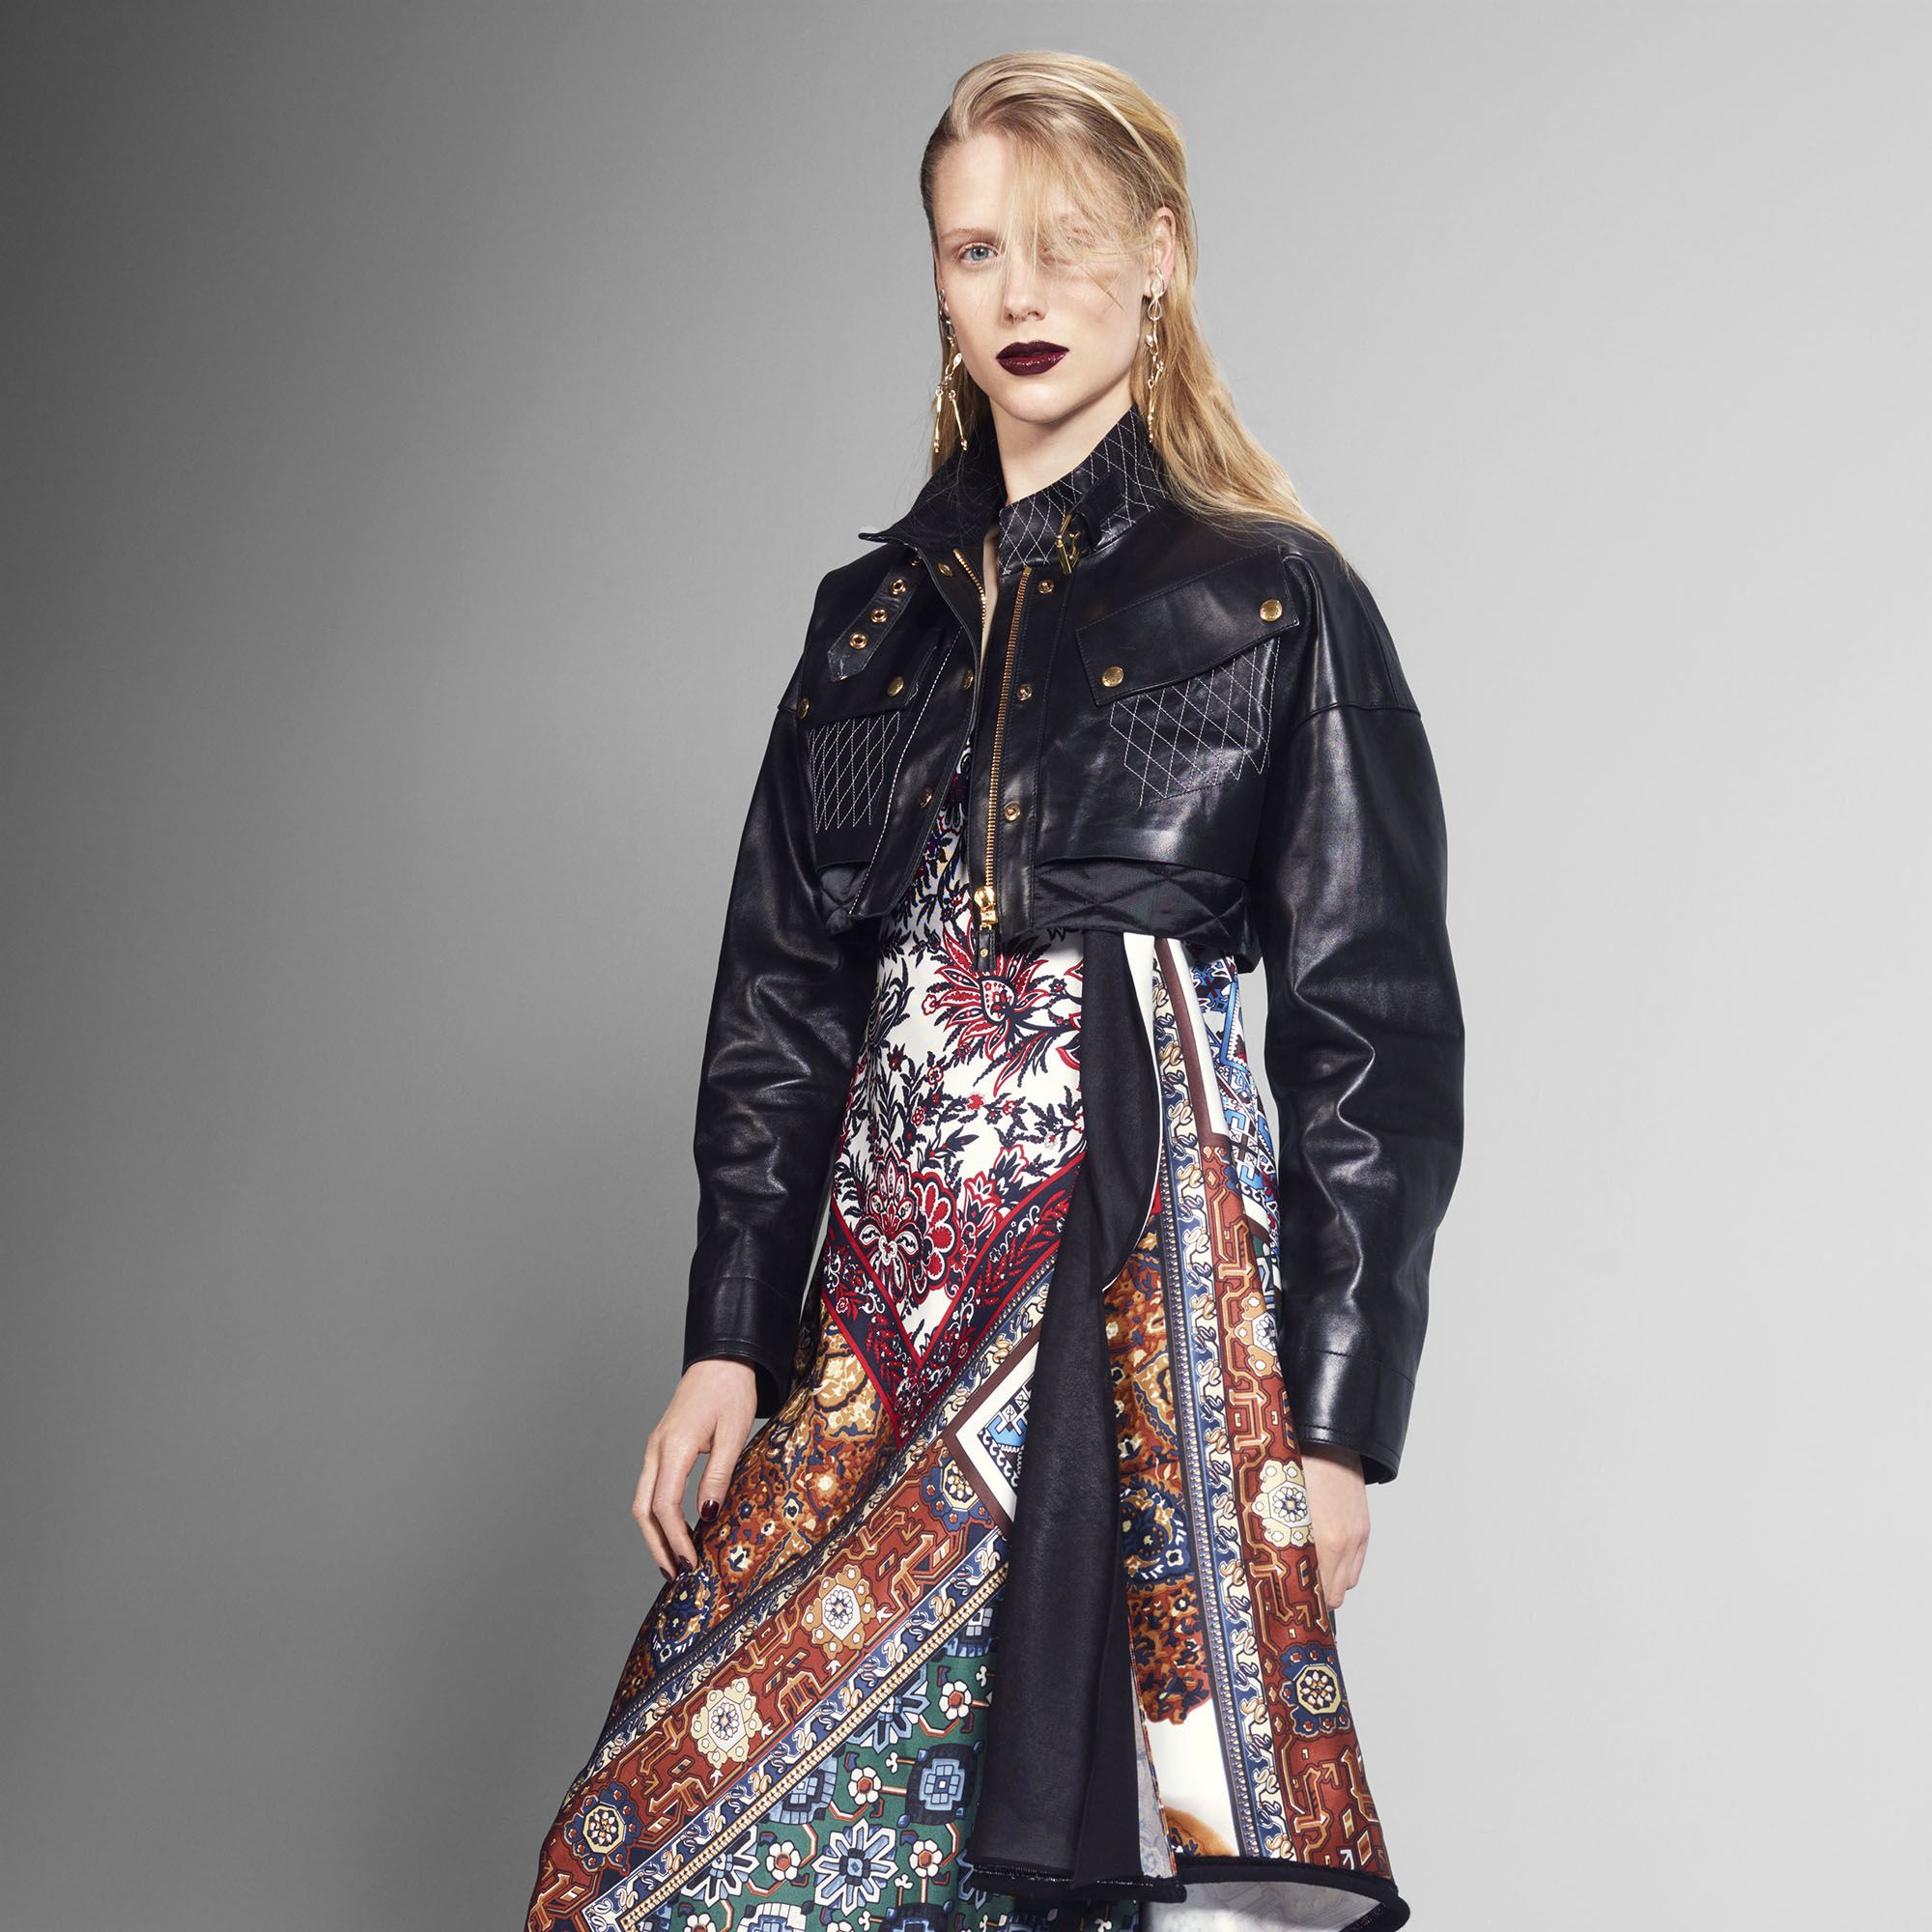 """<p>Contrast a feminine dress with a cropped moto.</p><p><strong>Louis Vuitton</strong> jacket, dress, earrings, and boots, prices upon request, 866-VUITTON.</p><p><strong>BEAUTY BAZAAR: </strong><a href=""""http://us.amorepacific.com/time-response-eye-renewal-creme"""" target=""""_blank"""">AmorePacific Time Response Eye Renewal Creme</a> brightens up eyes ($260).</p>"""